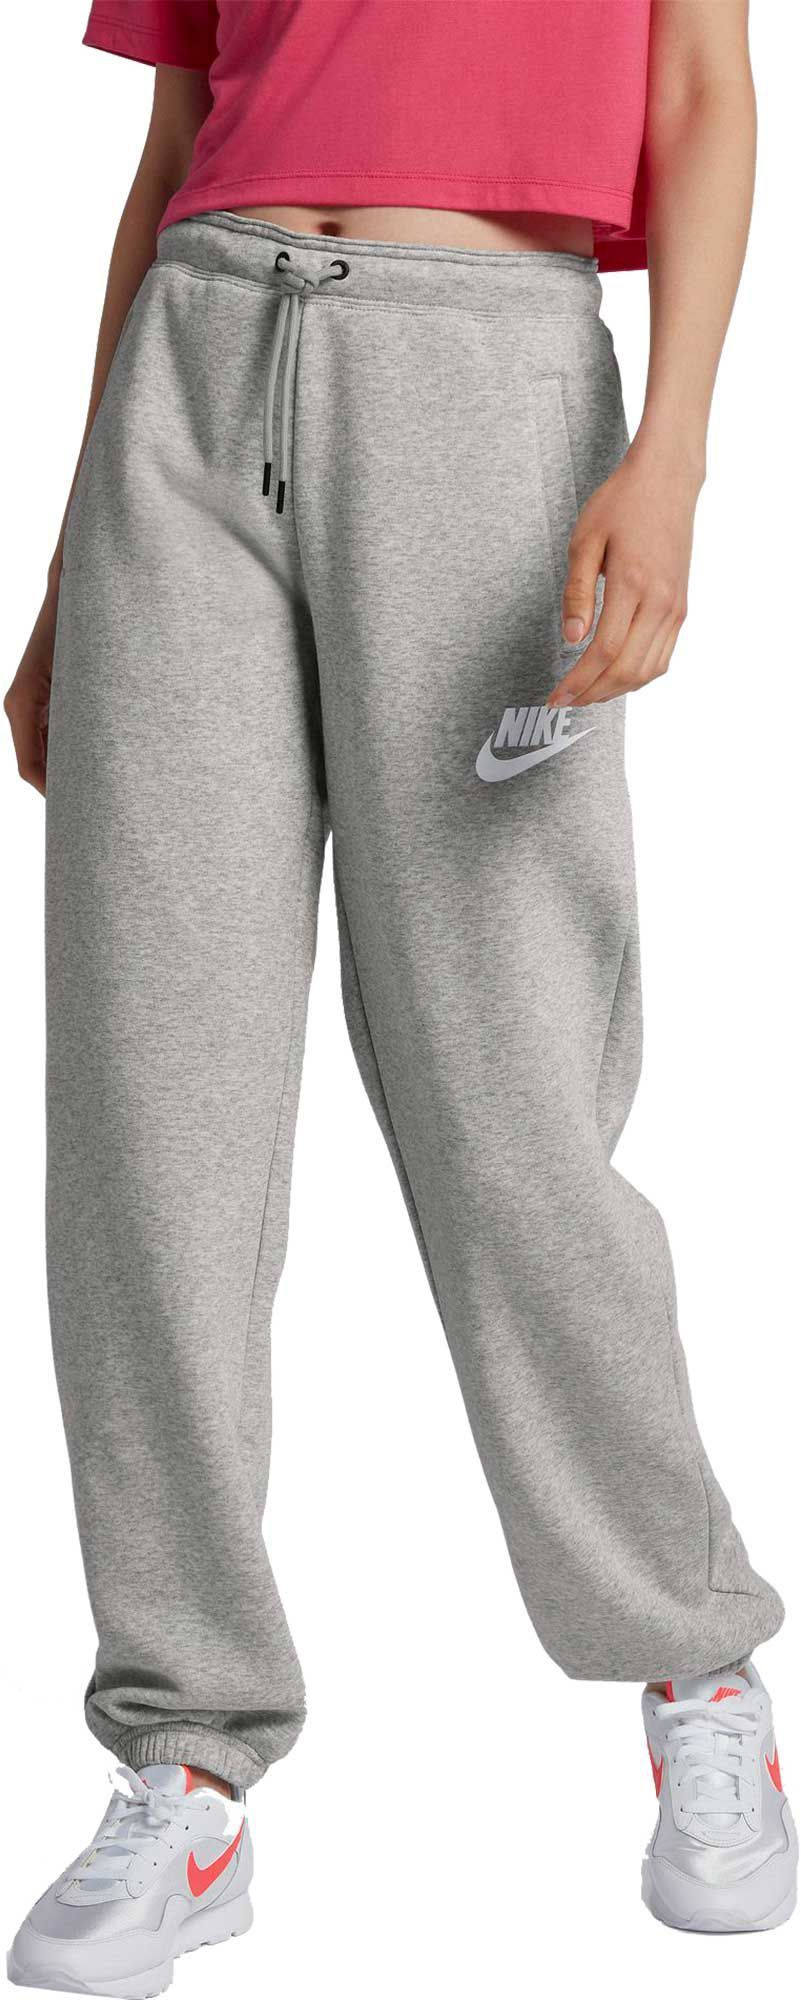 Nike Women's Sportswear Rally Loose Fit Sweatpants | DICK'S Sporting GoodsPropos…